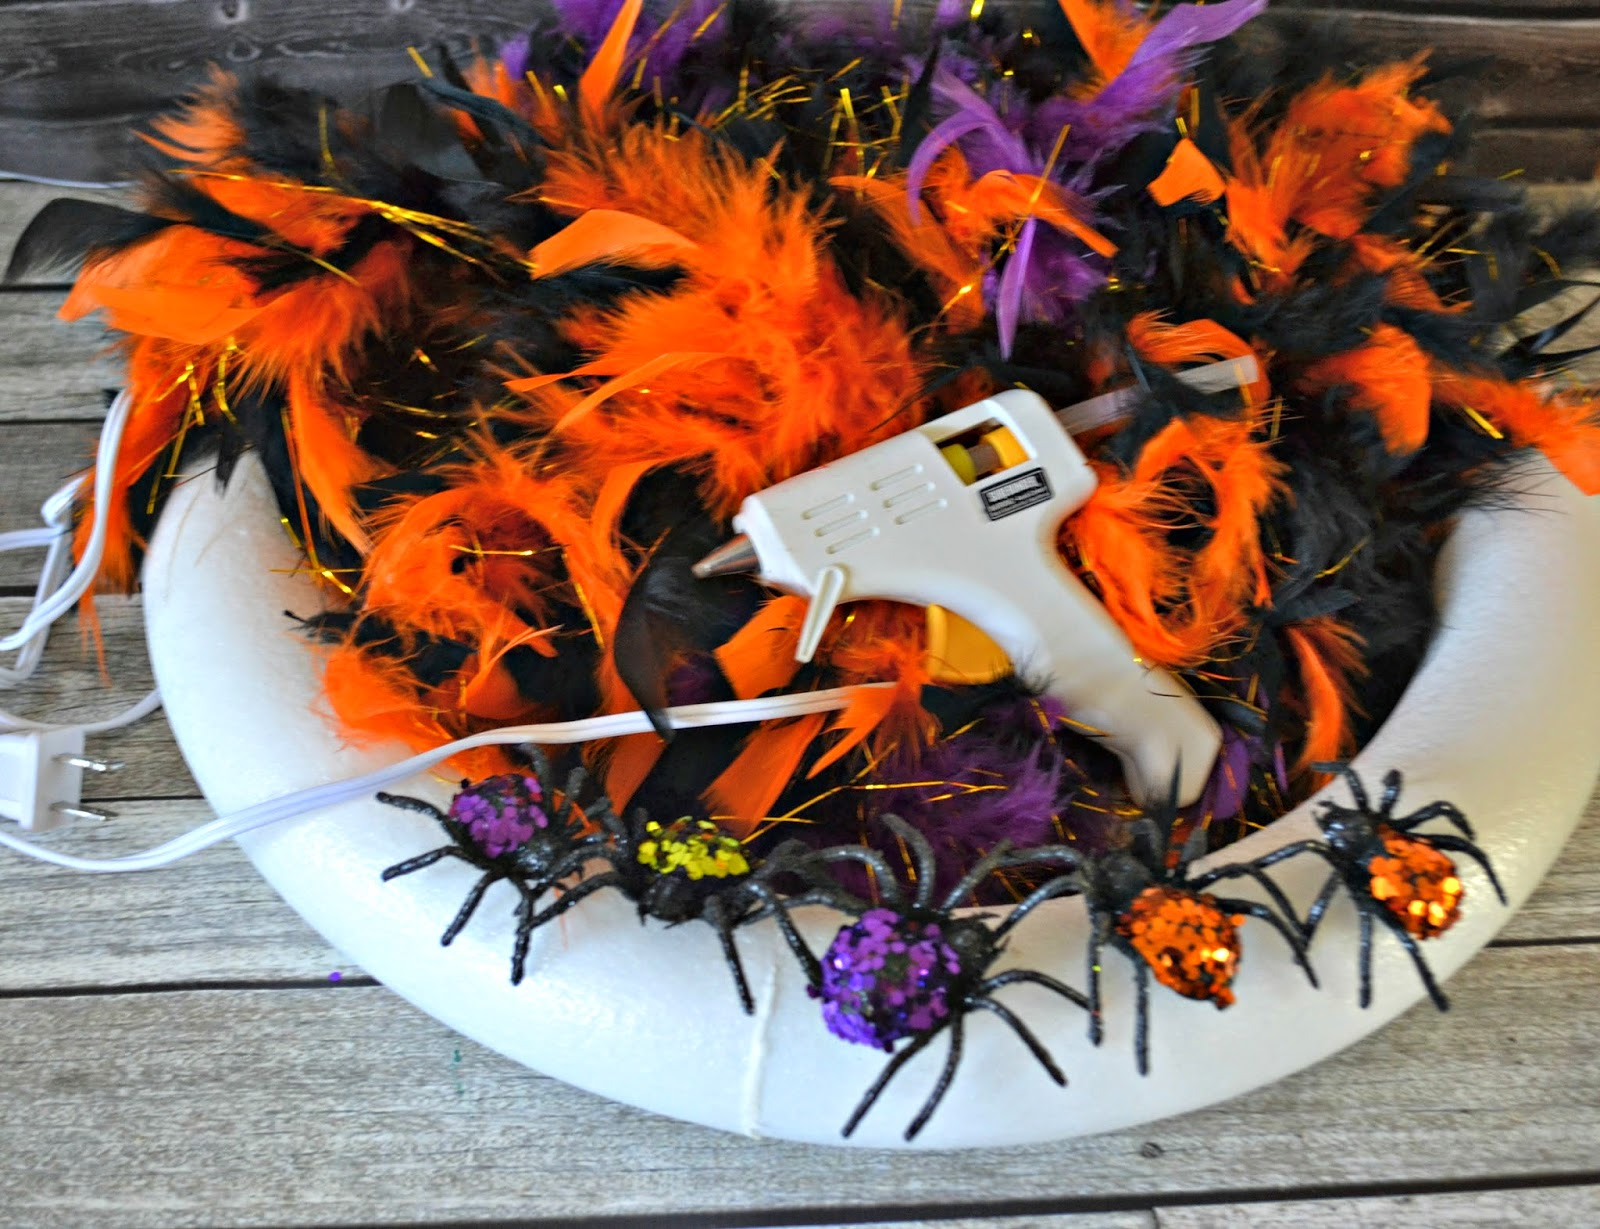 Diy halloween wreath - Feathered Halloween Door Wreath Diy Easy Halloween Decorations Diy Halloween Door Wreath